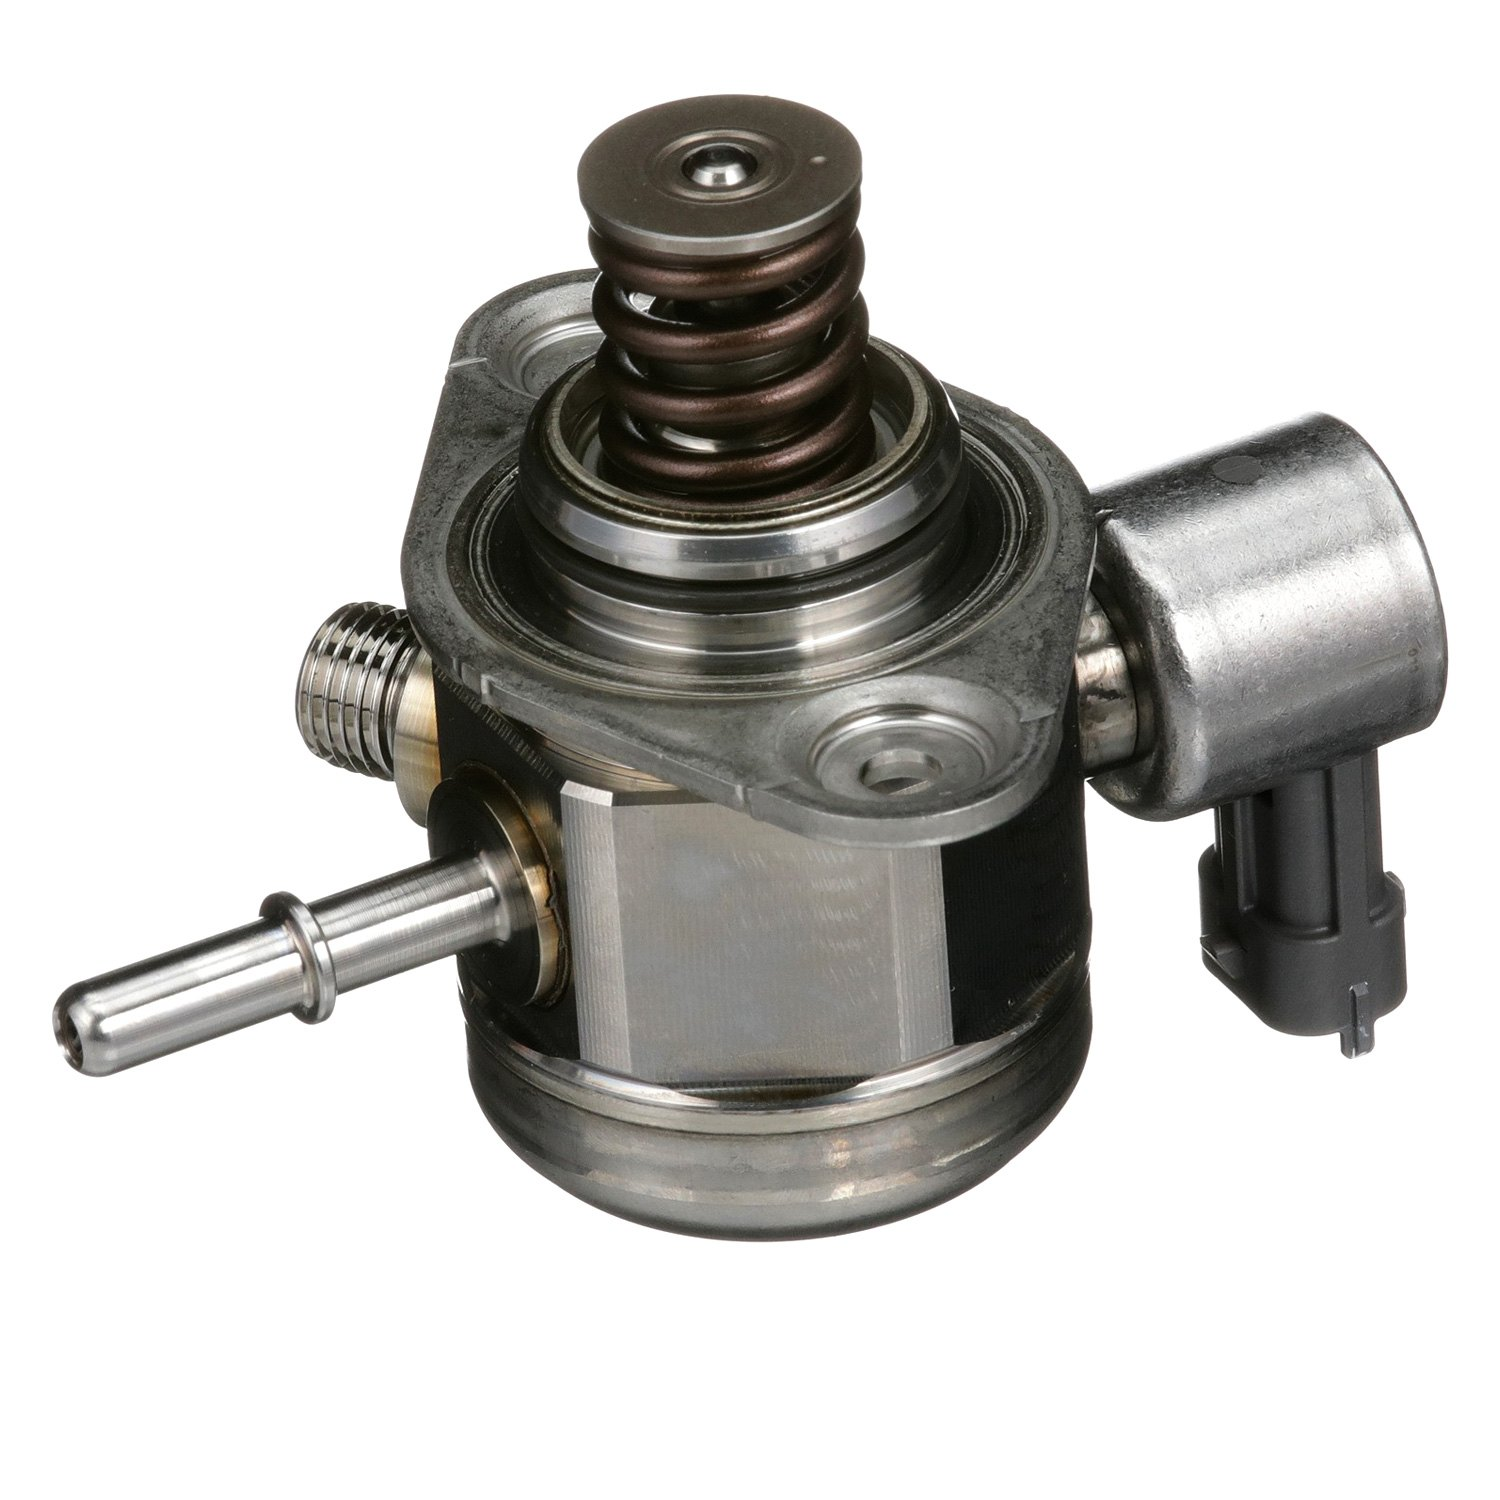 Direct Inject High Pressure Fuel Pump For Land Rover LR2 Evoque Ford Focus Volvo